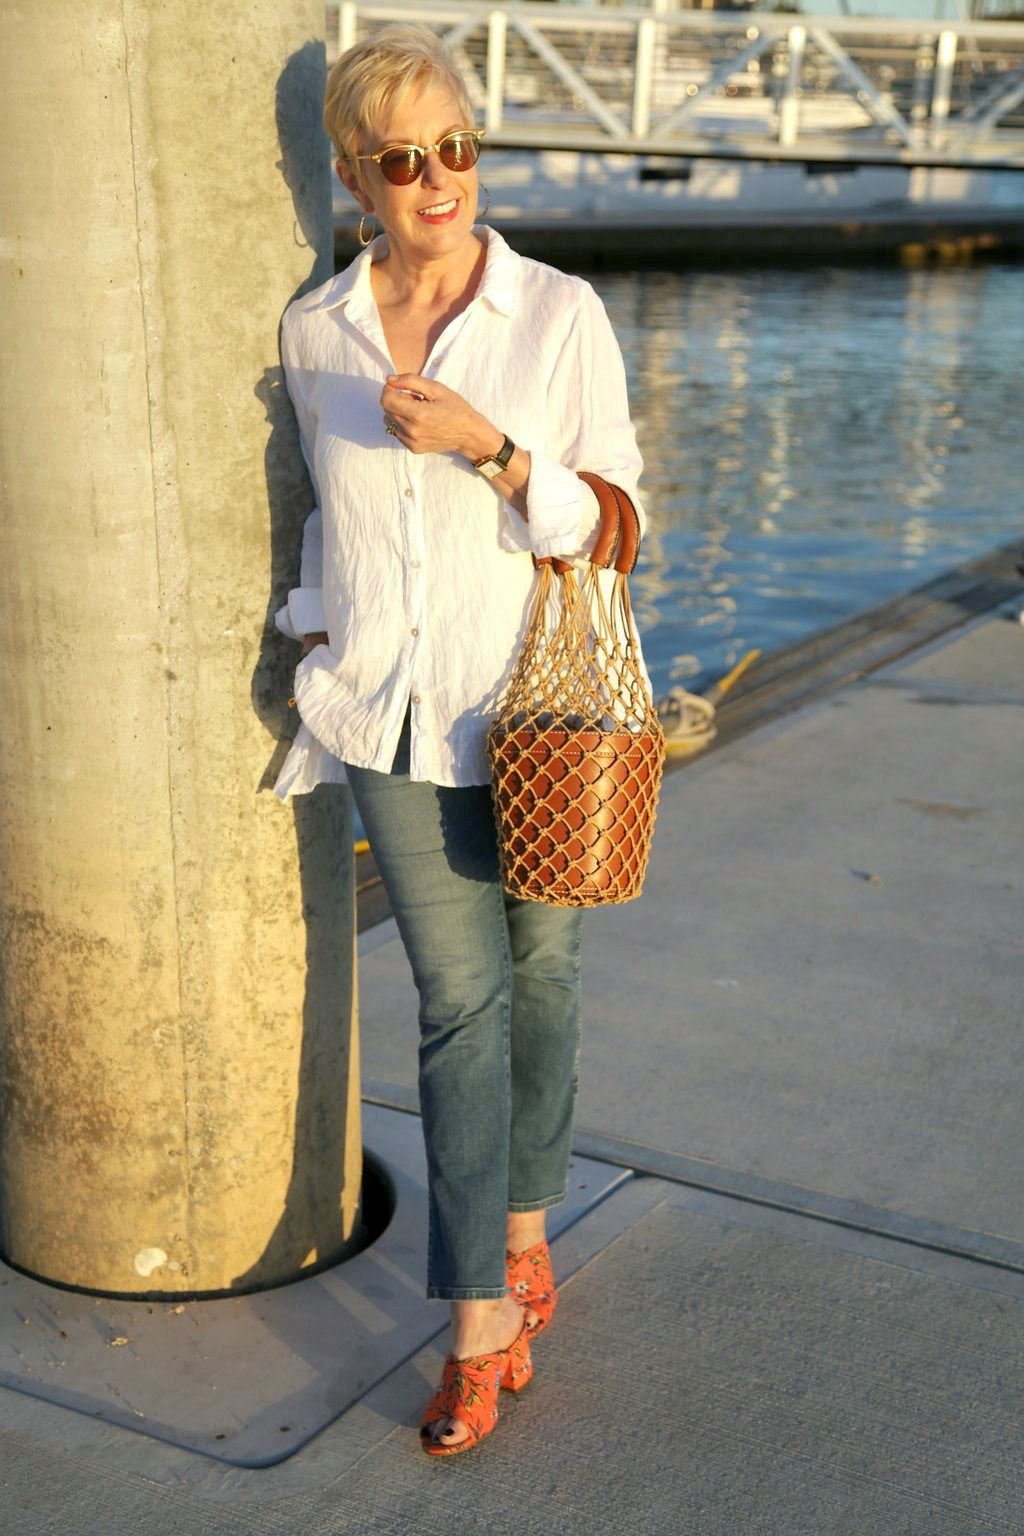 blog and style over fifty Not Only Twenty